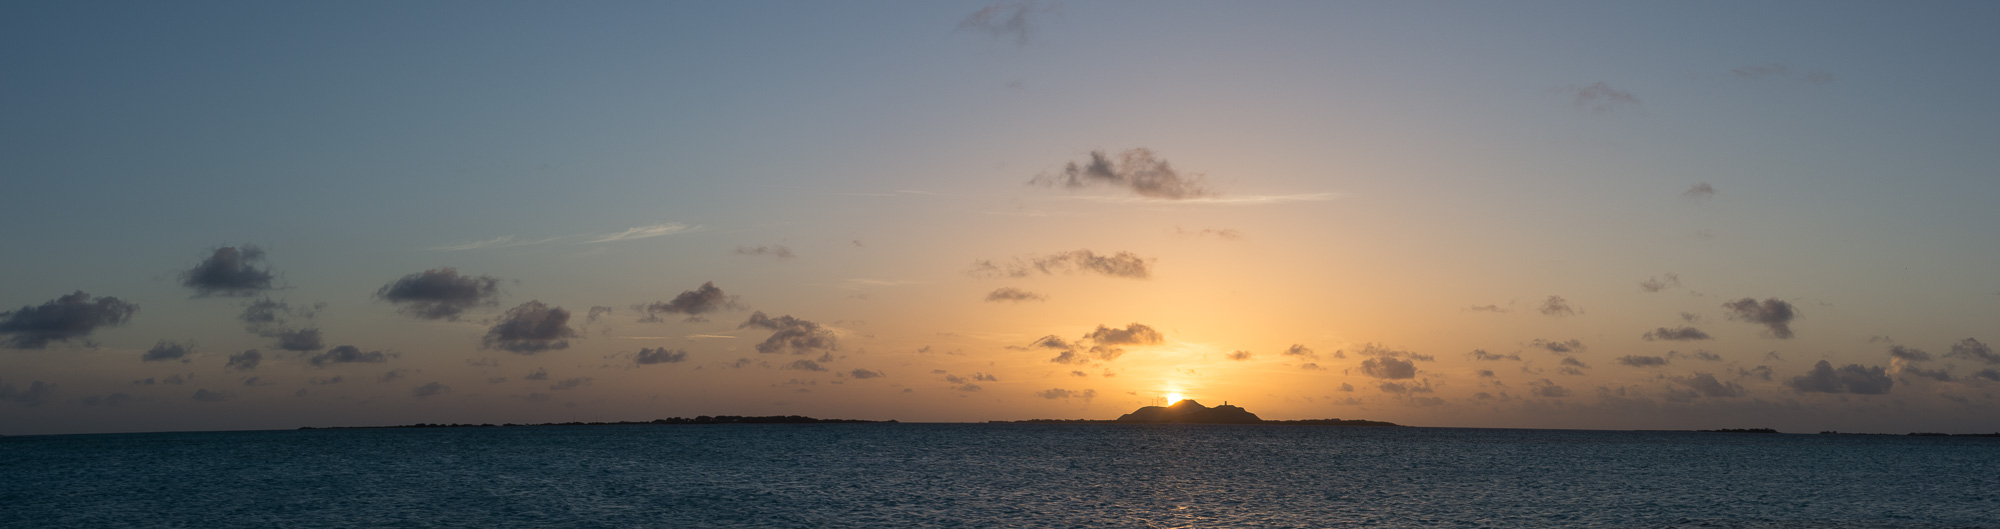 SUNSET LOS ROQUES